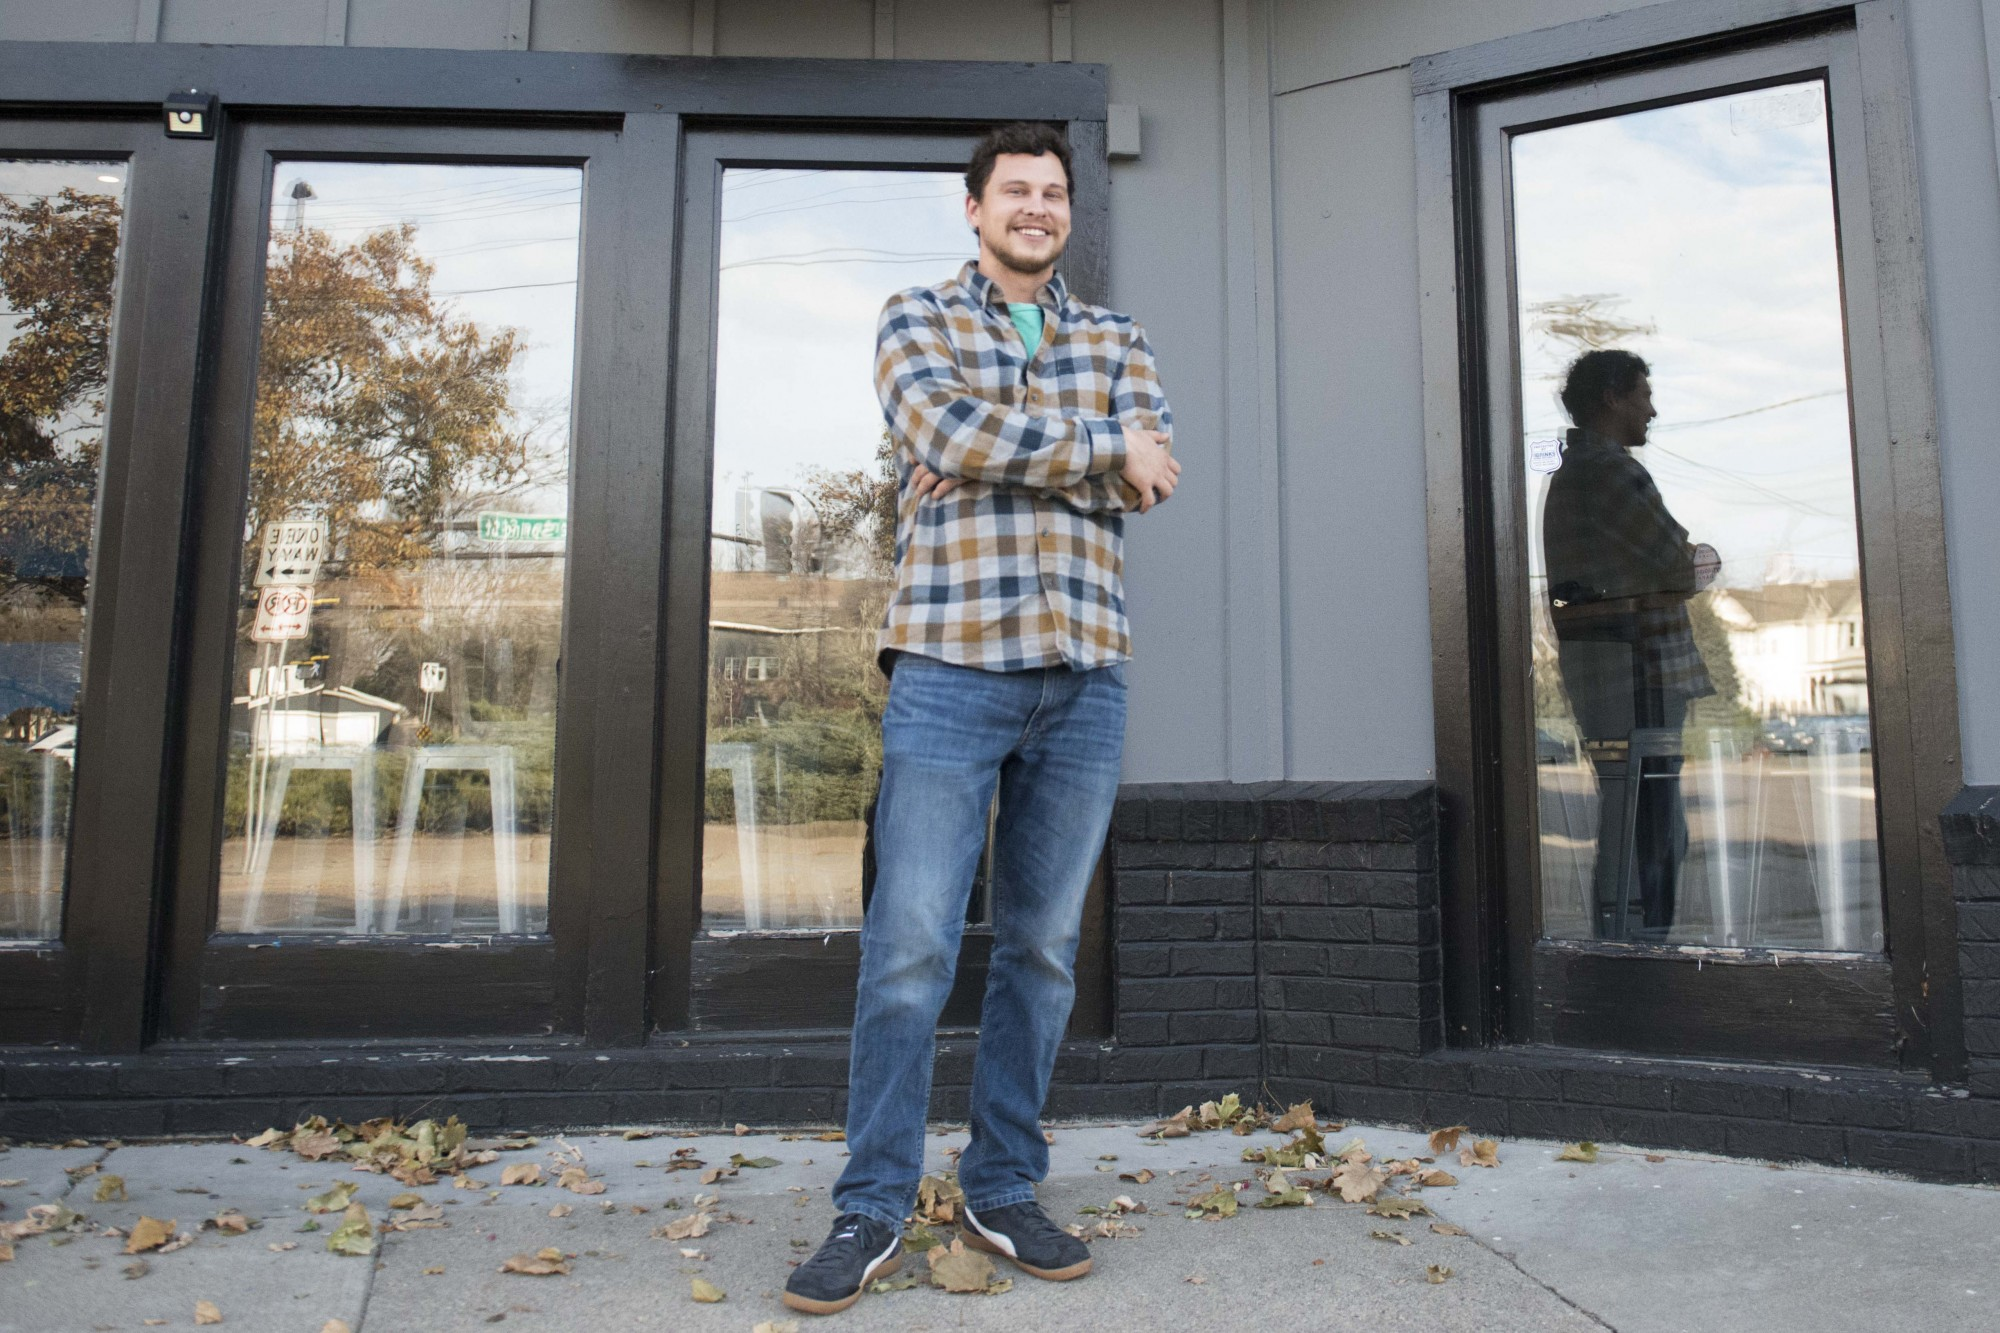 Alex Zick, owner of the new NE-Arcade in Northeast Minneapolis, poses for a portrait outside the bar and arcade on Saturday, Nov. 16. It opens to the public on Friday.